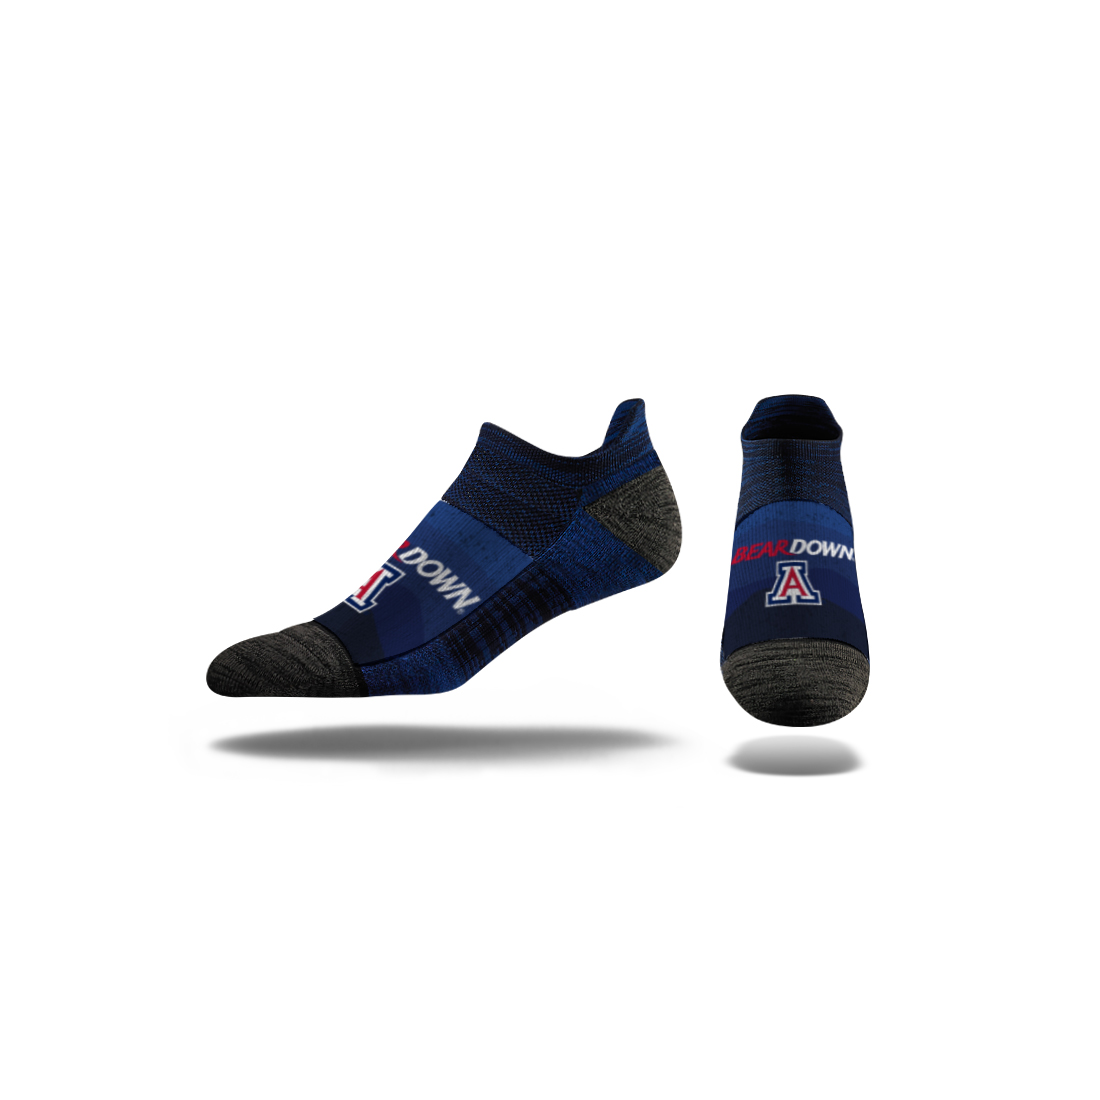 Image For Socks: Arizona BEAR DOWN Low Ankle By Strideline